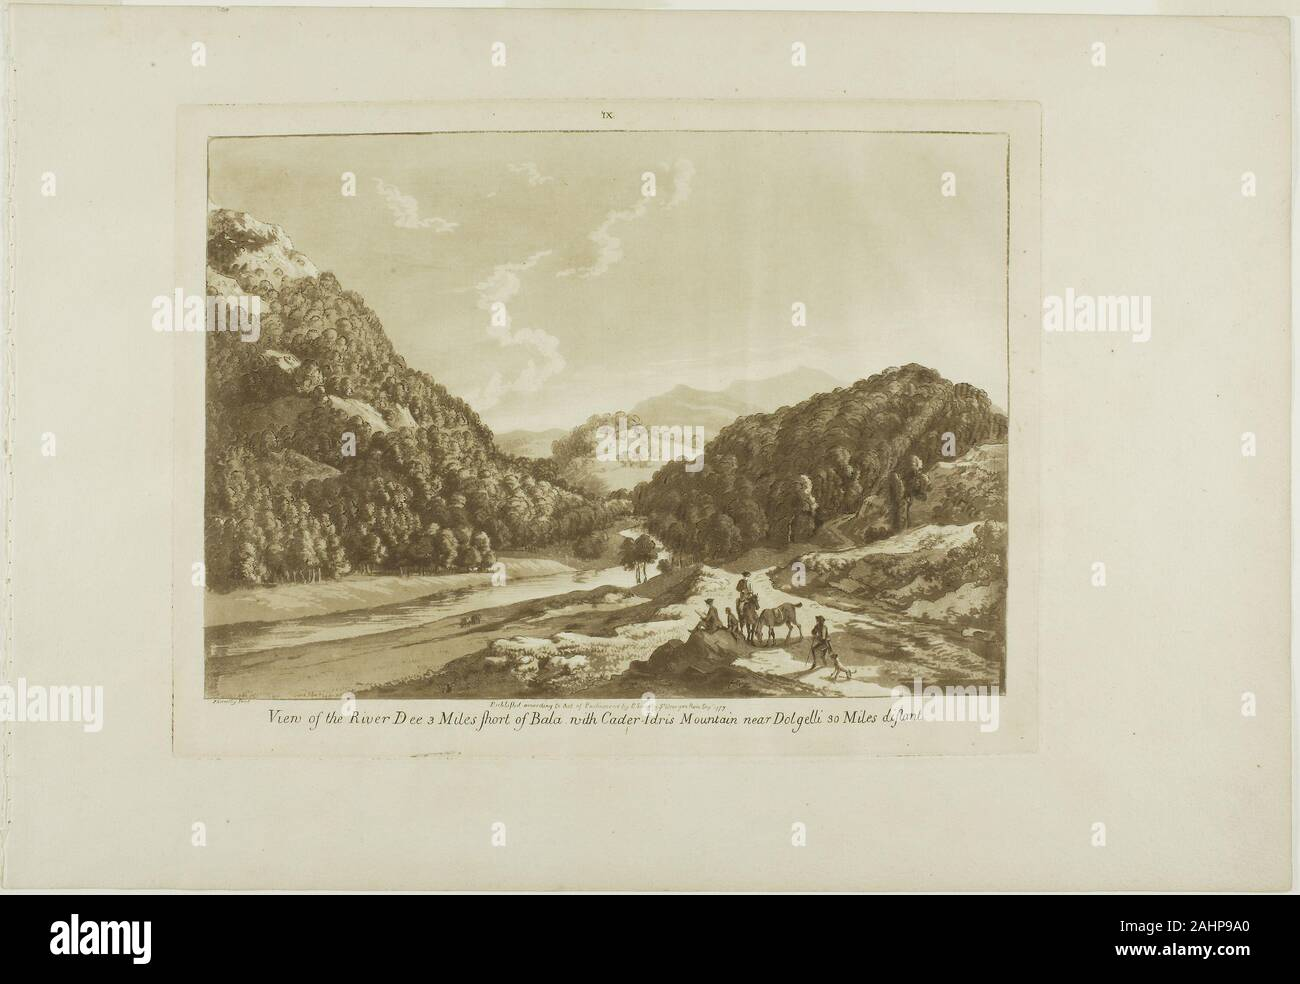 Paul Sandby. View of the River Dee 3 Miles Short of Bala, with Cadar-Idris Mountain near Dolgelli 30 Miles Distant. 1776. England. Aquatint on cream laid paper Stock Photo